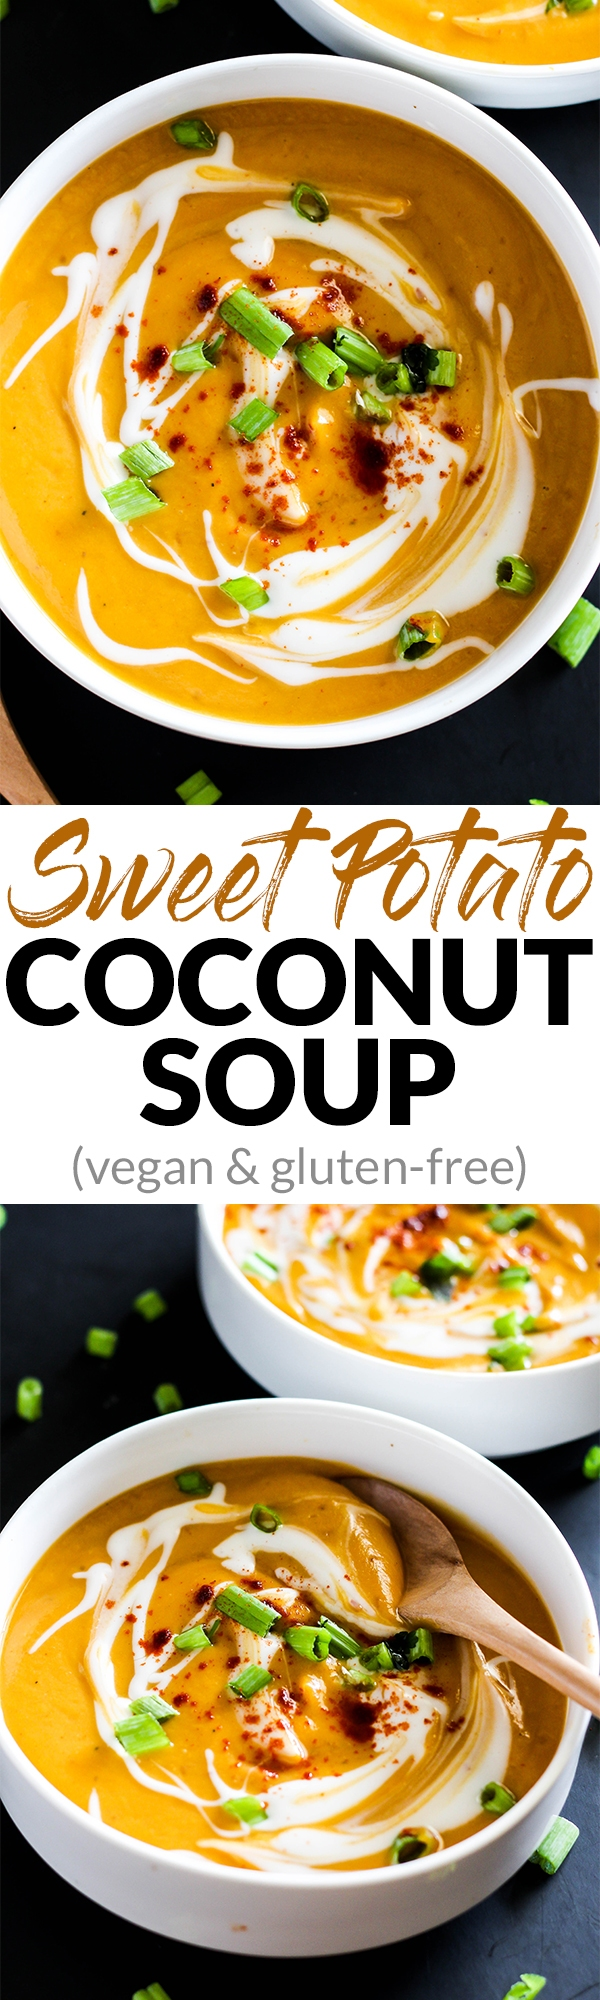 Cozy up with a bowl of this Sweet Potato Coconut Soup during the colder months! It's the perfect vegan & gluten-free side dish for any dinner table.